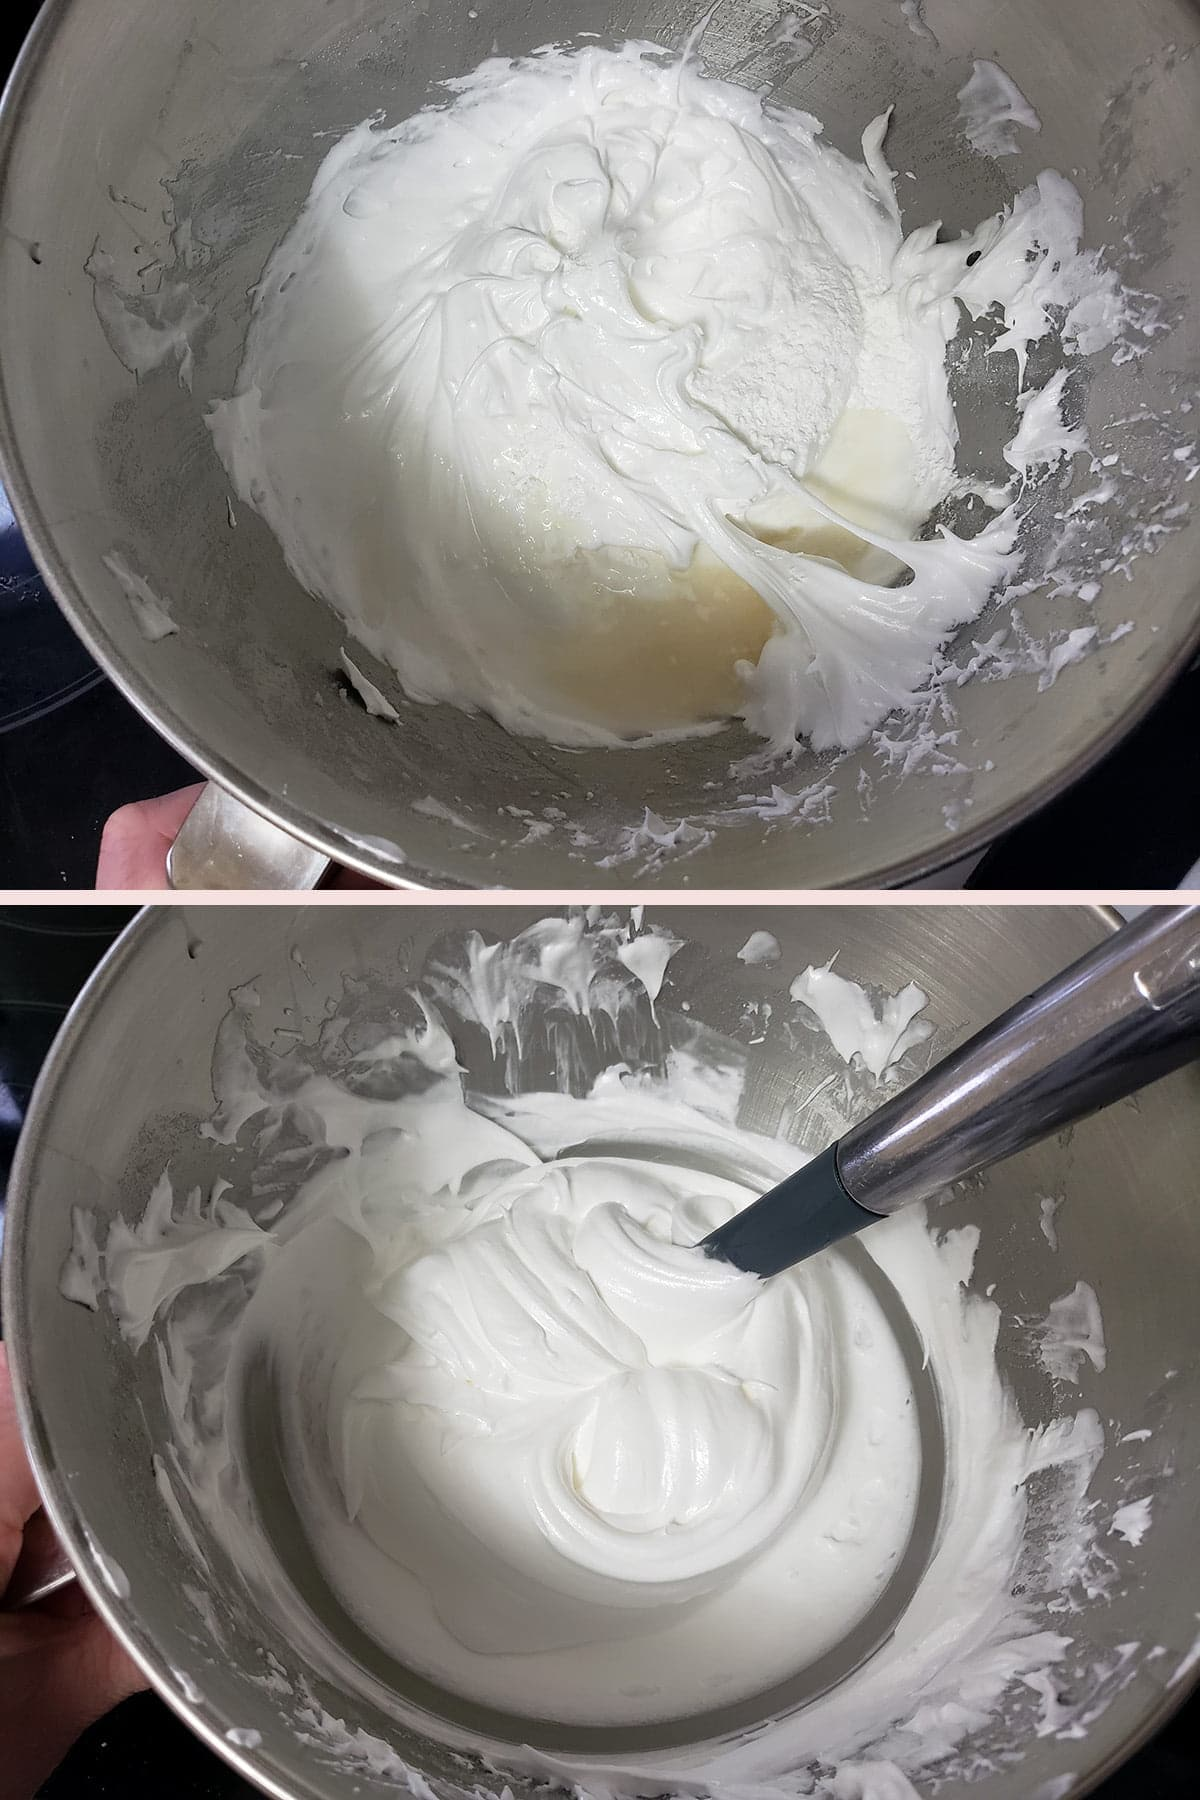 A two part compilation image showing extract, cornstarch, and vinegar being folded into meringue.